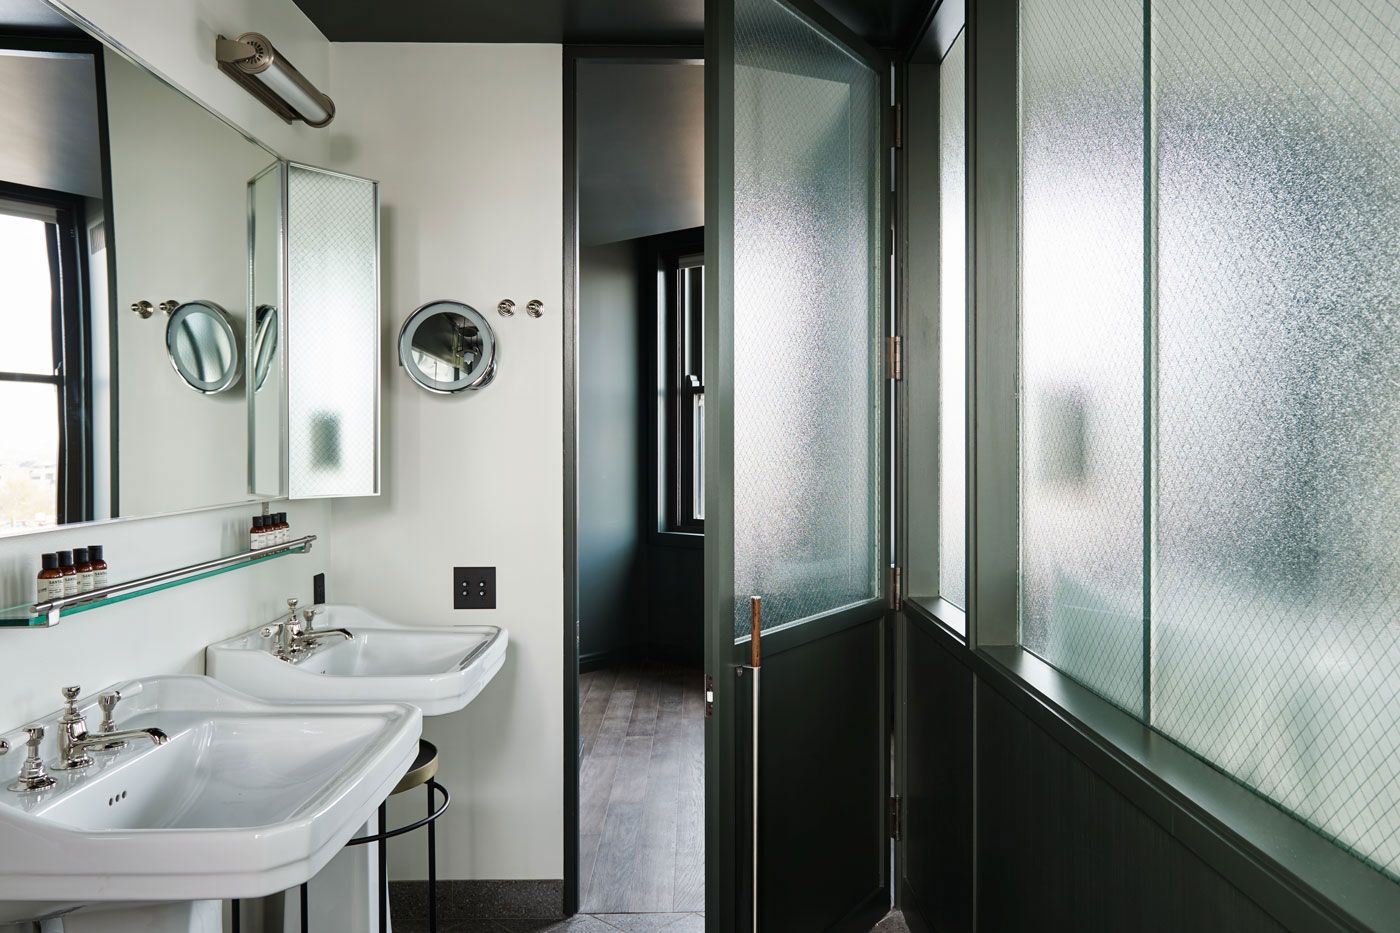 Hoods in the bathroom and toilet